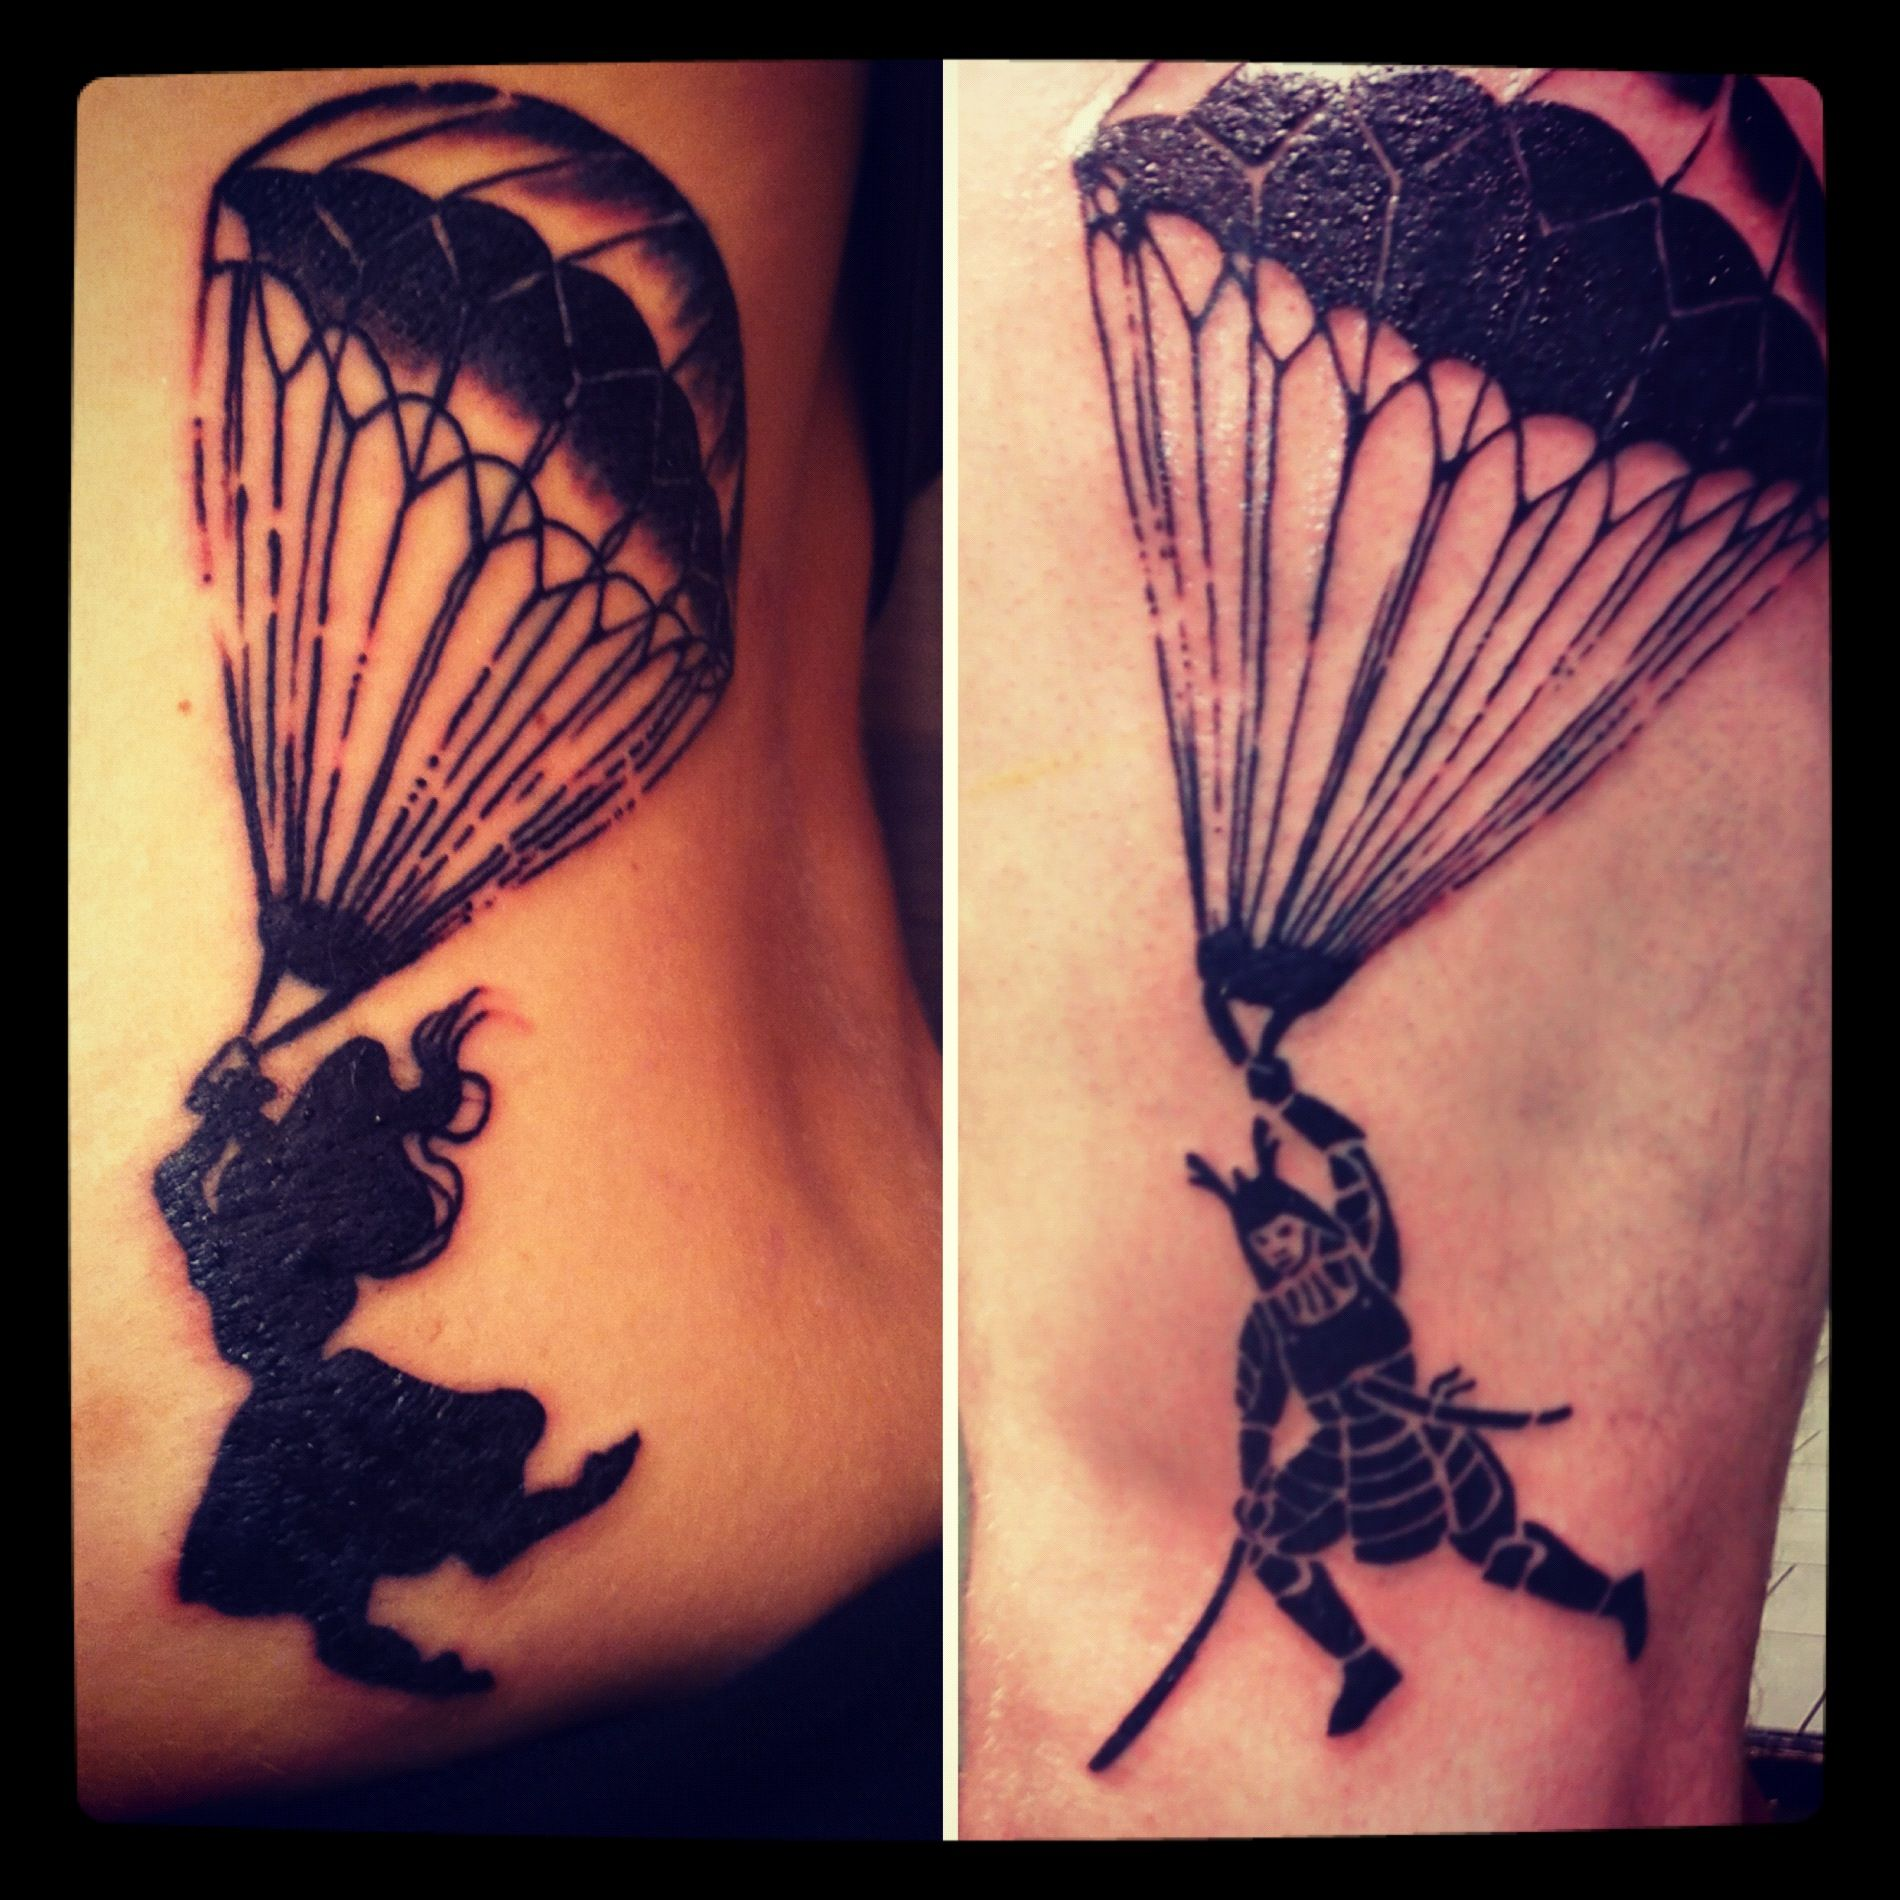 my step dad and i got matching parachute tattoos in honor of our my step dad and i got matching parachute tattoos in honor of our annual skydiving adventures